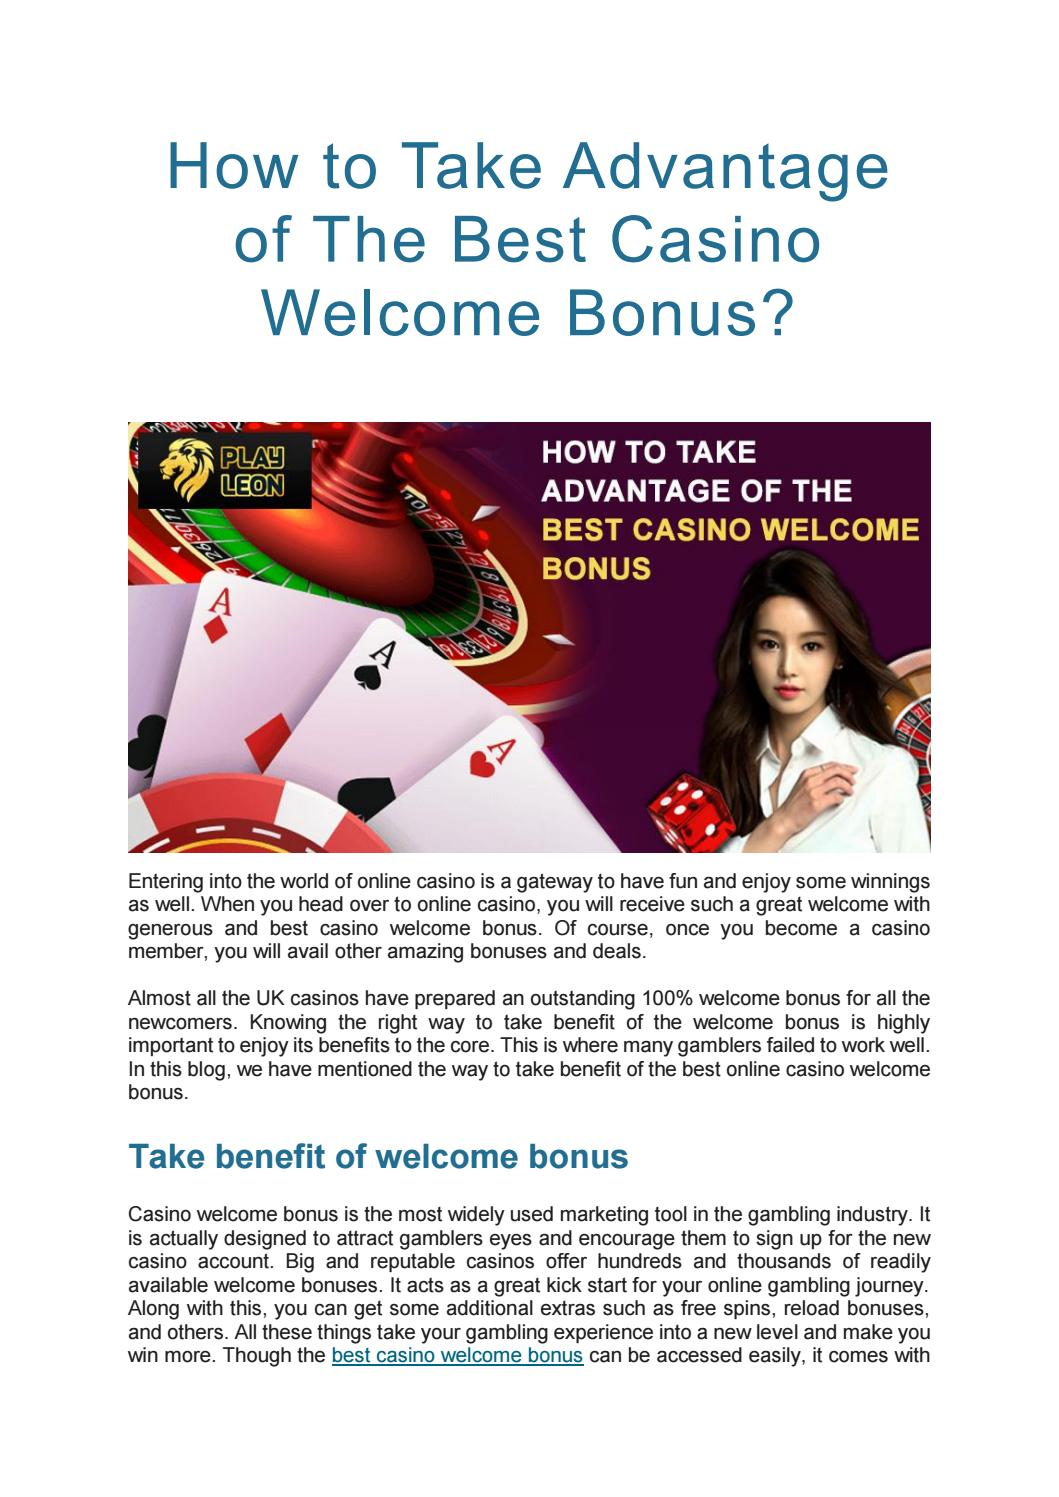 How To Take Advantage Of The Best Casino Welcome Bonus By